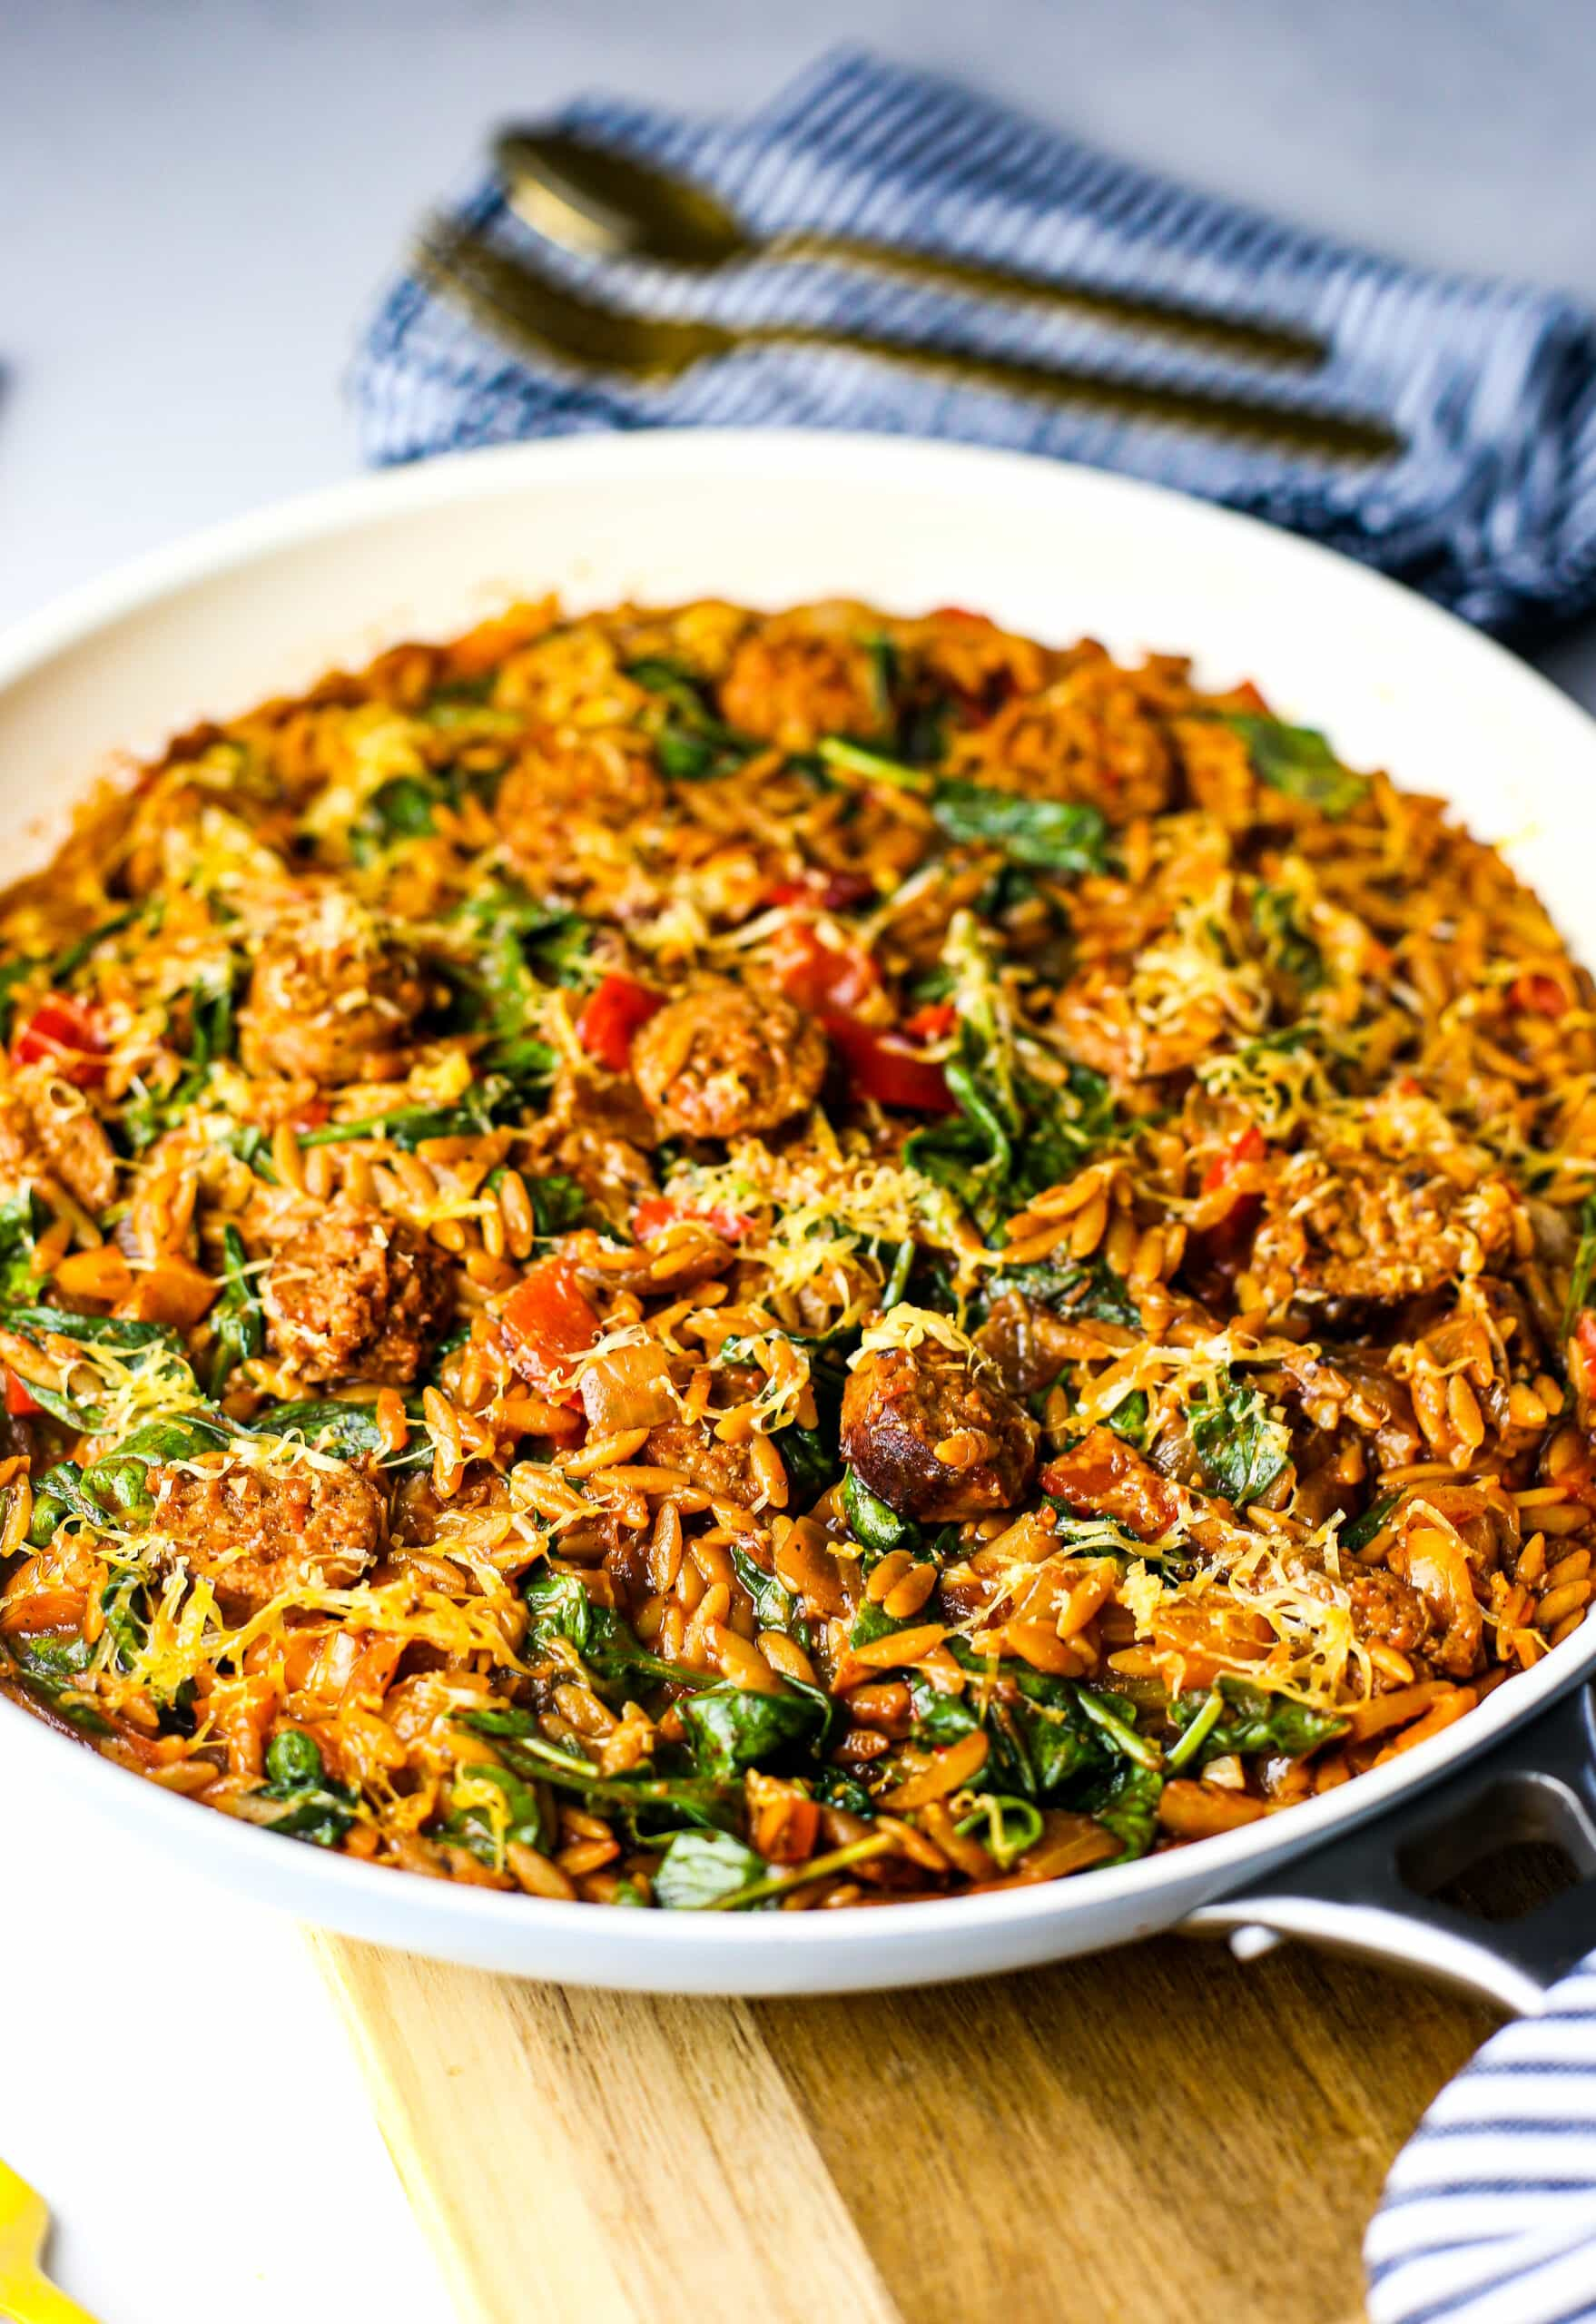 A top-angled view of a white frying pan full of orzo pasta with Italian sausage, onions, and peppers in a marinara sauce.